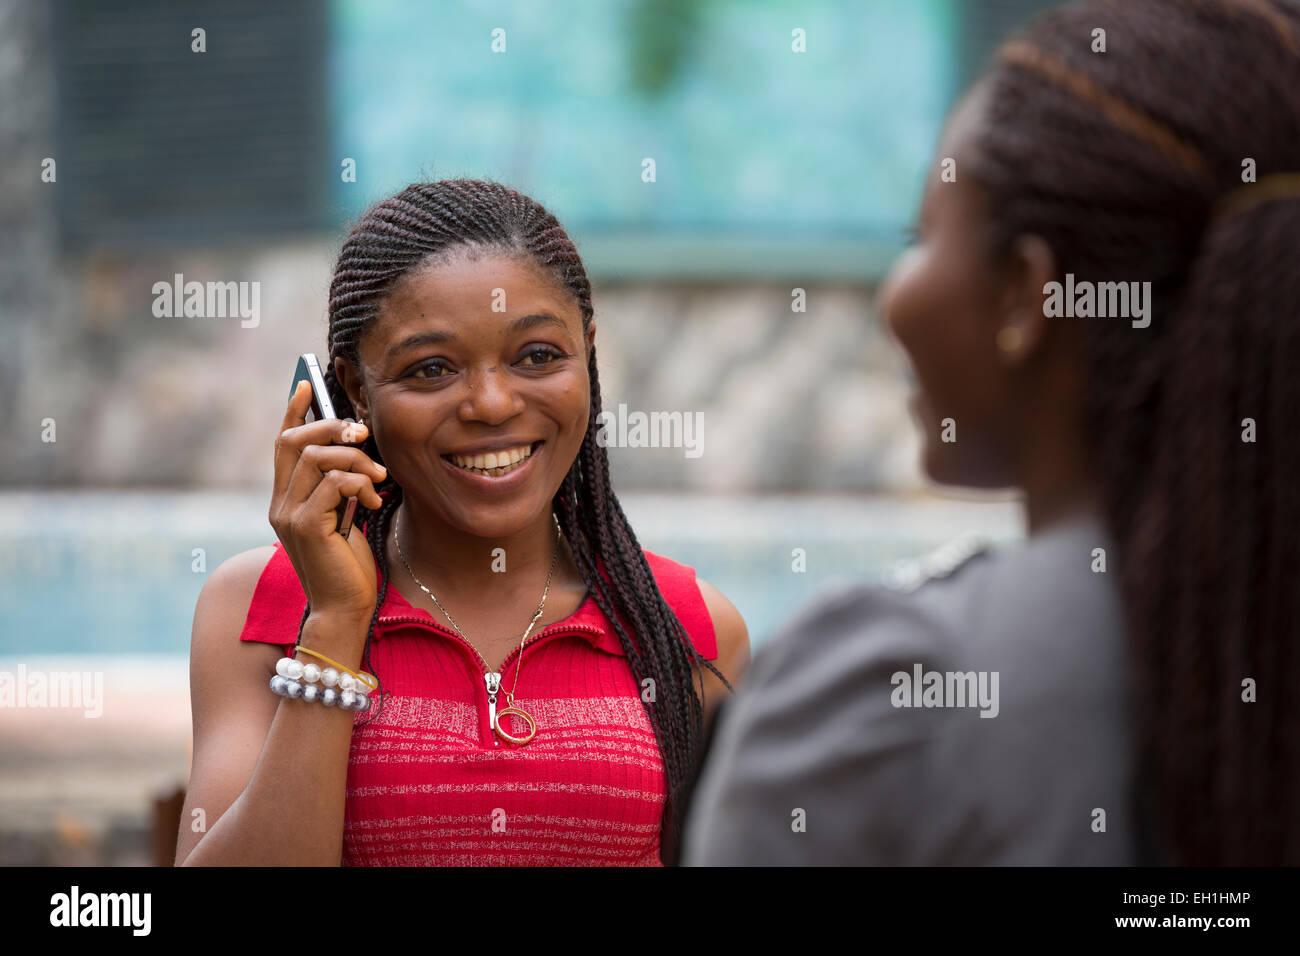 Lagos, Nigeria; A young woman on her mobile phone in a city street. - Stock Image